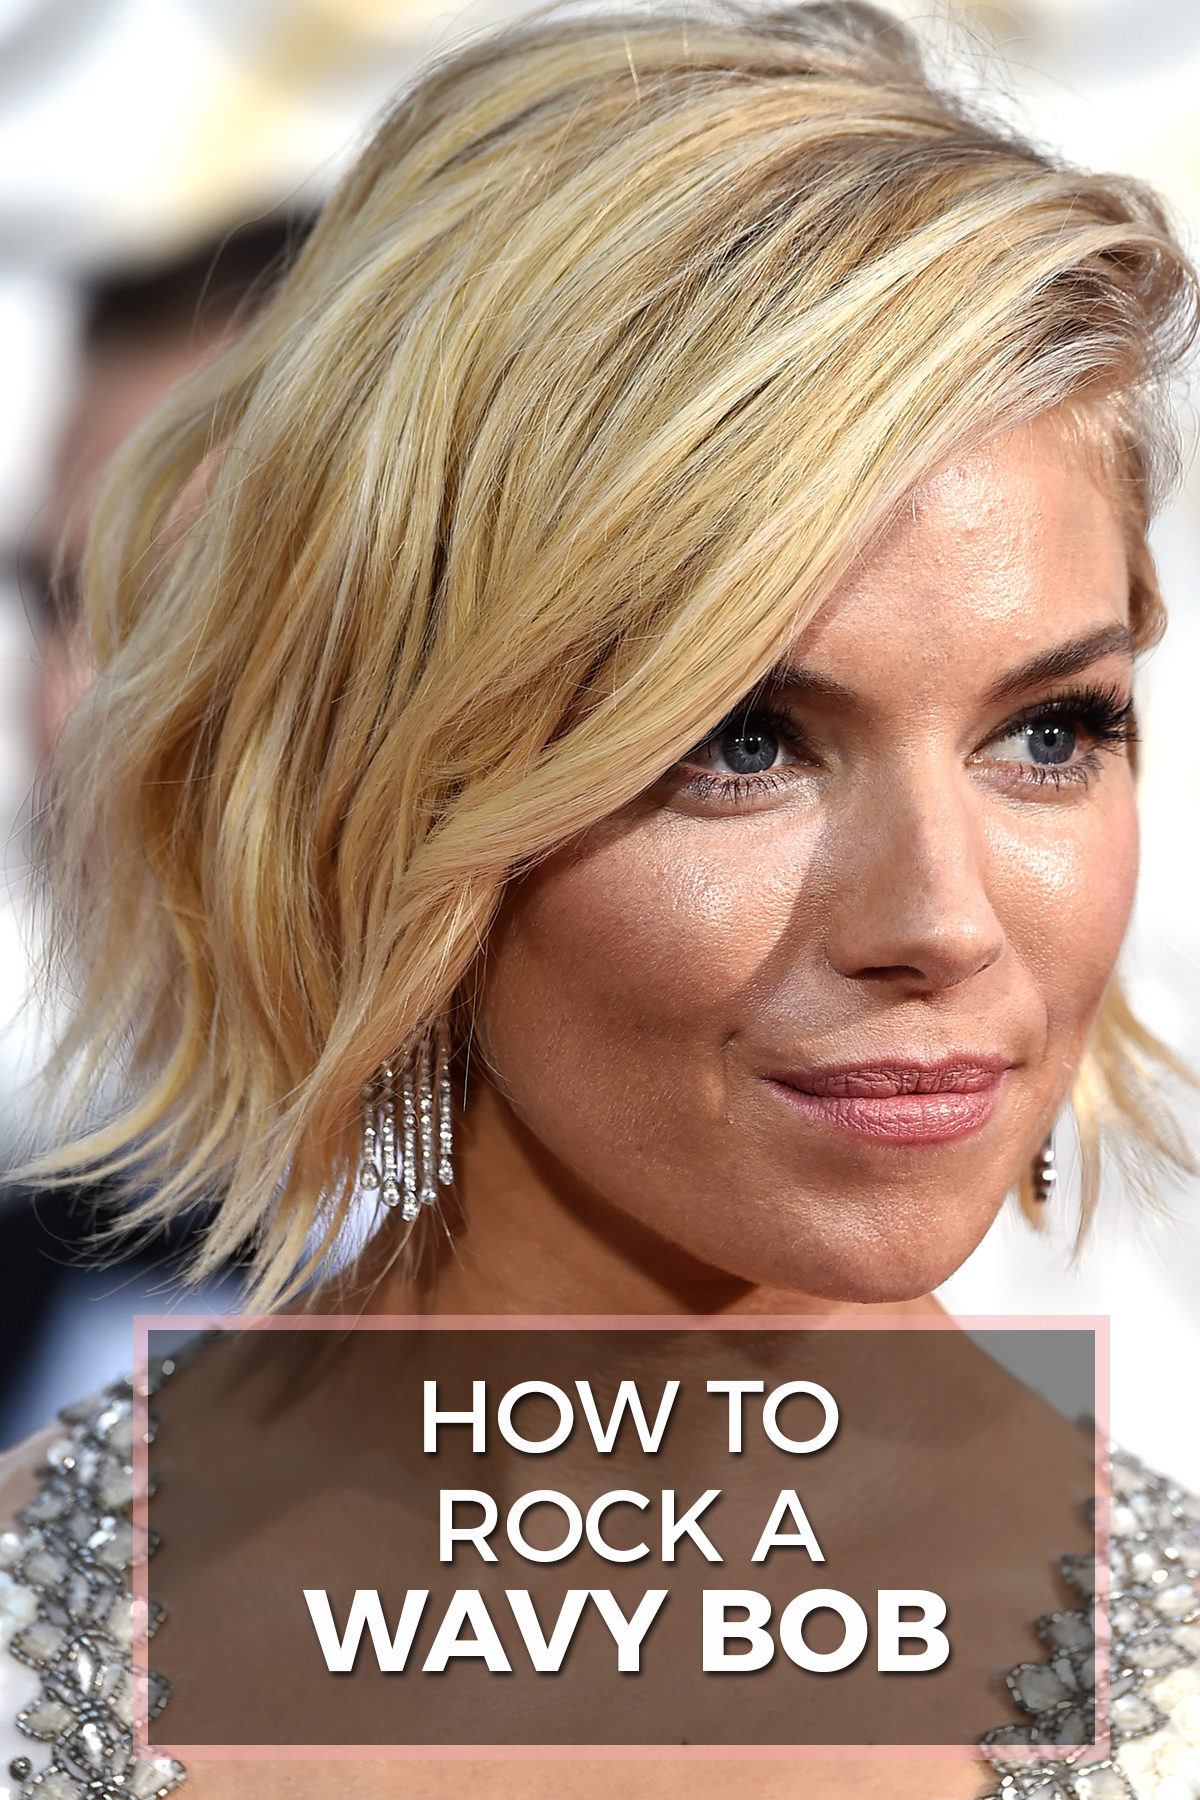 Admirable Wavy Bob Hairstyles How To Rock This Summer39S 39It39 Cut The Hairstyles For Men Maxibearus